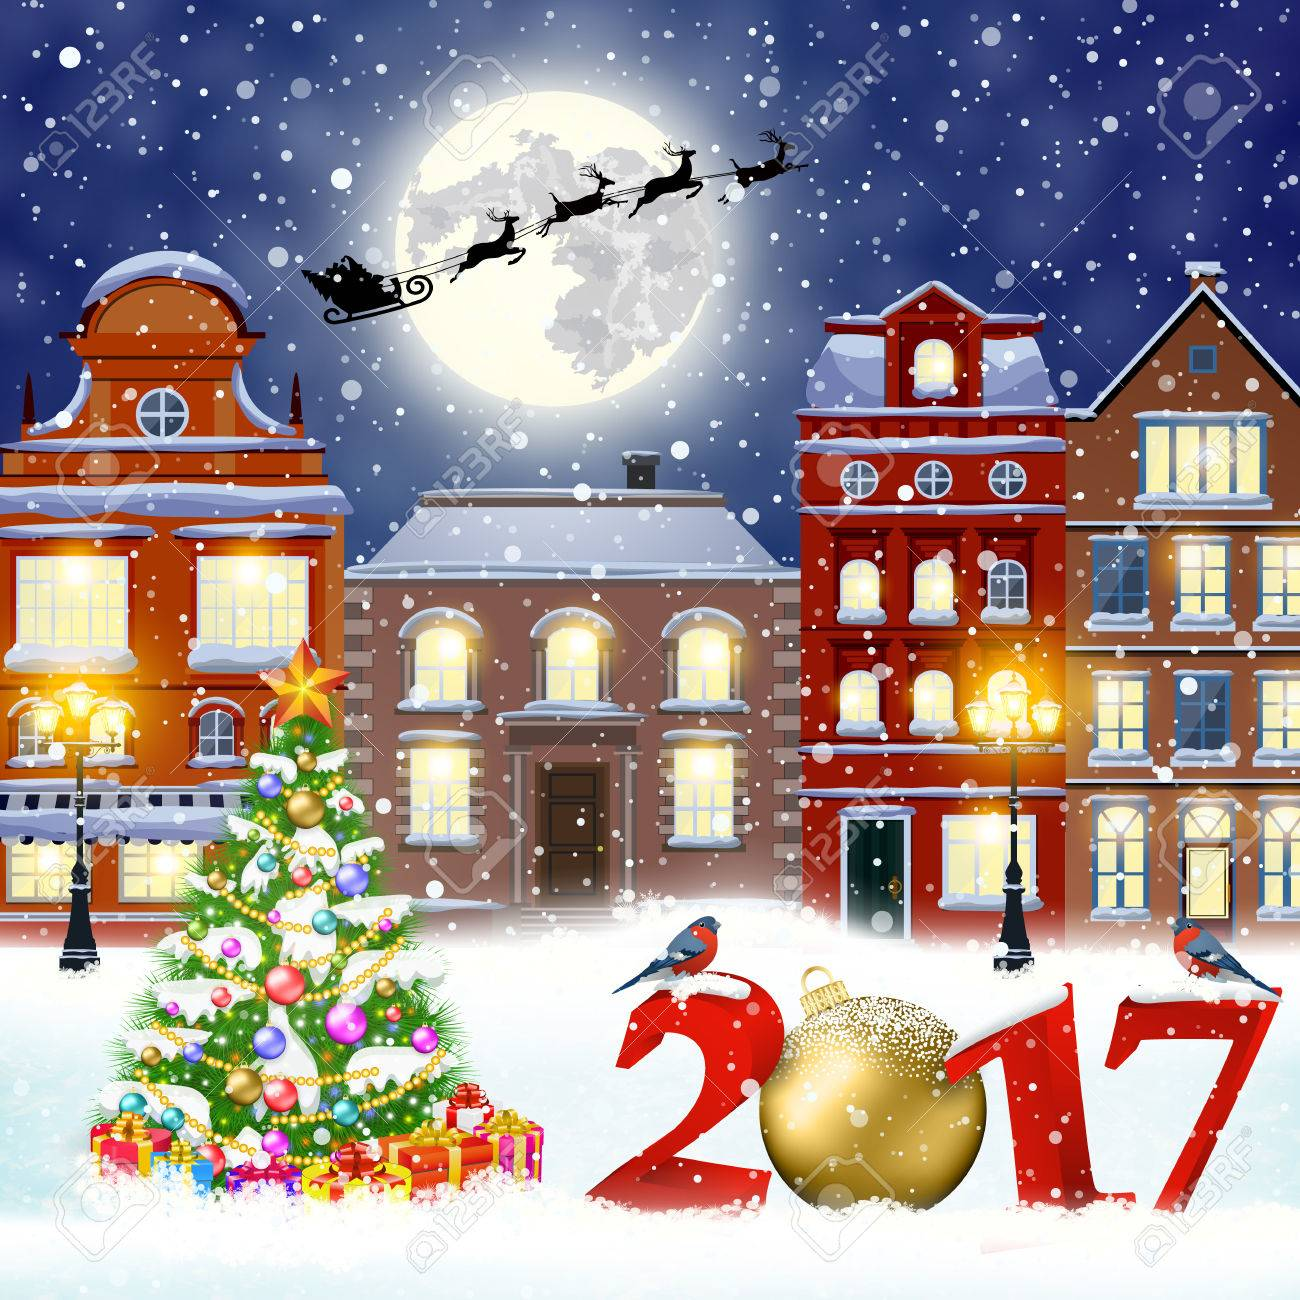 happy new year and merry christmas winter old town street with christmas tree santa claus